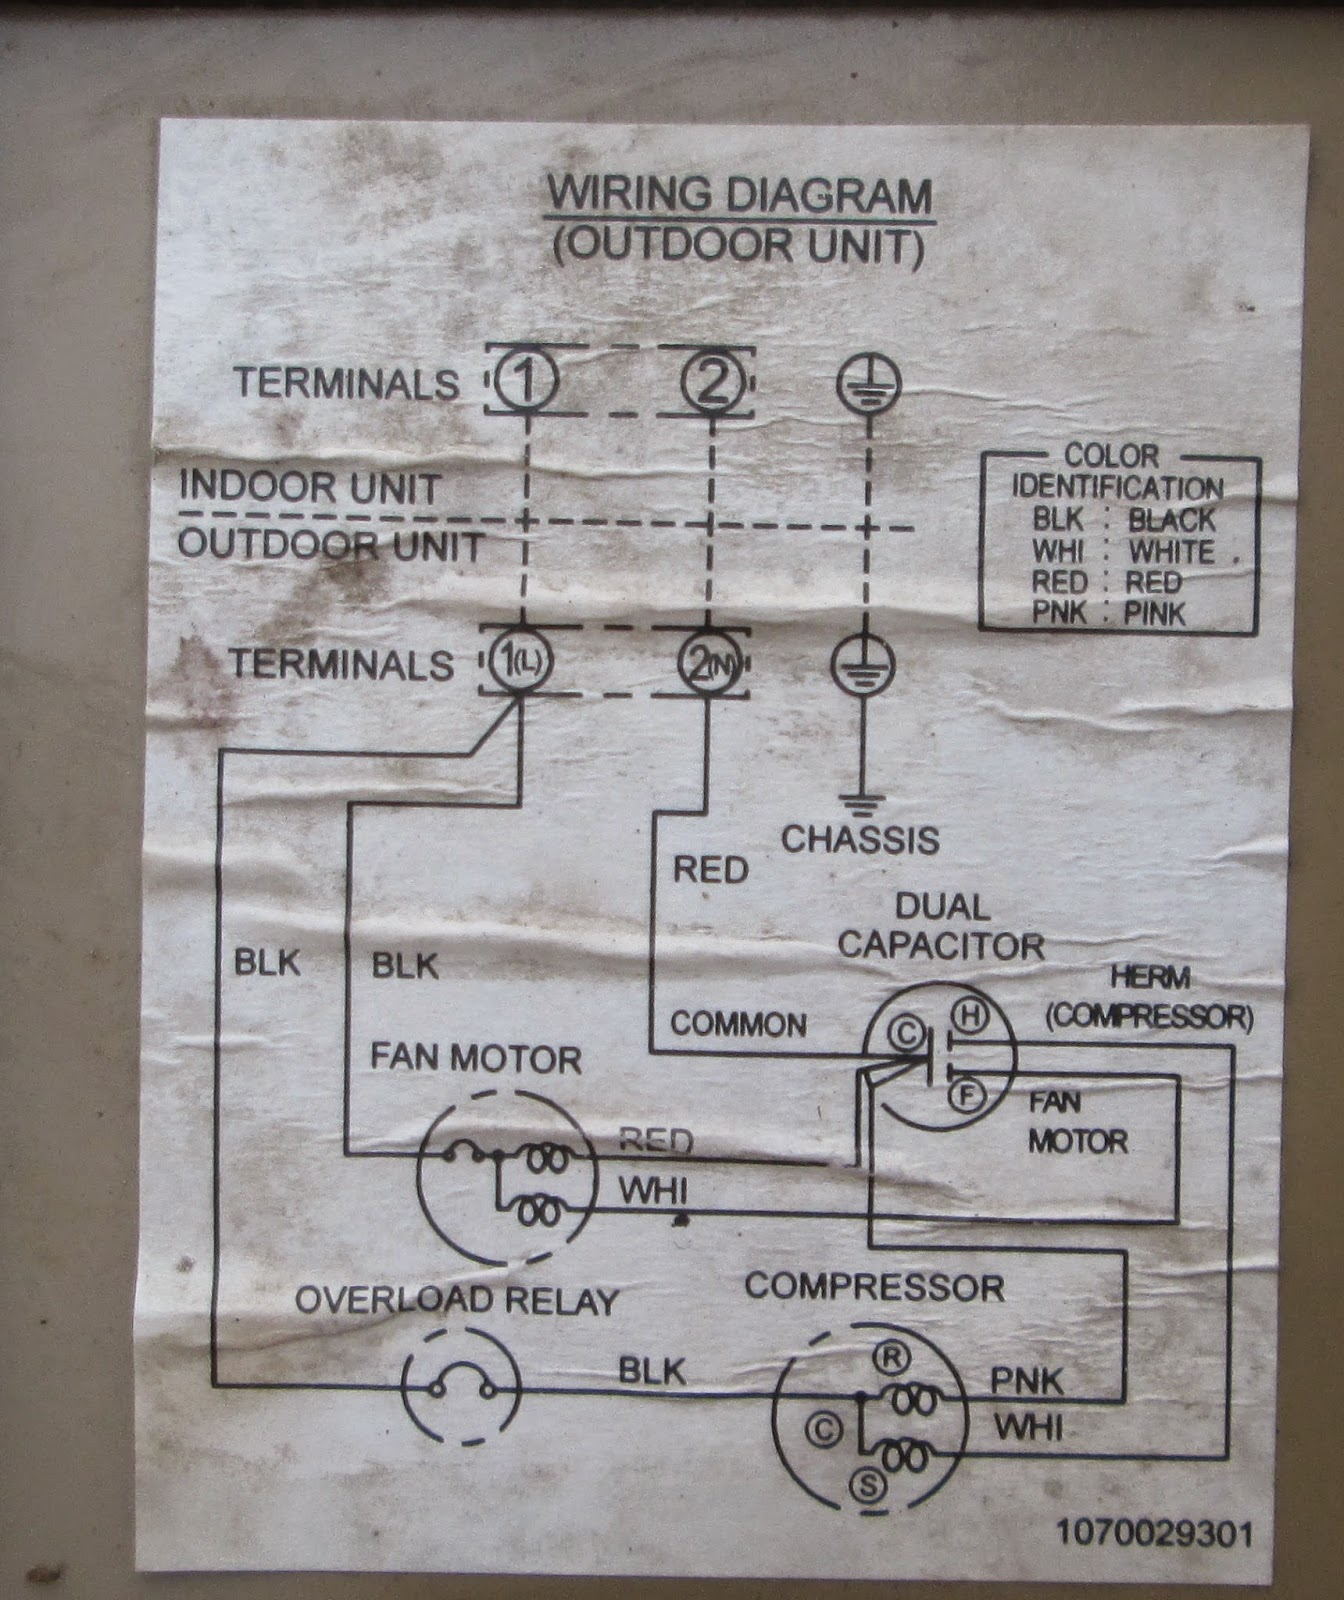 wiring diagram ac split daikin 2 pk single phase capacitor start run motor service kota serang baru kelistrikan